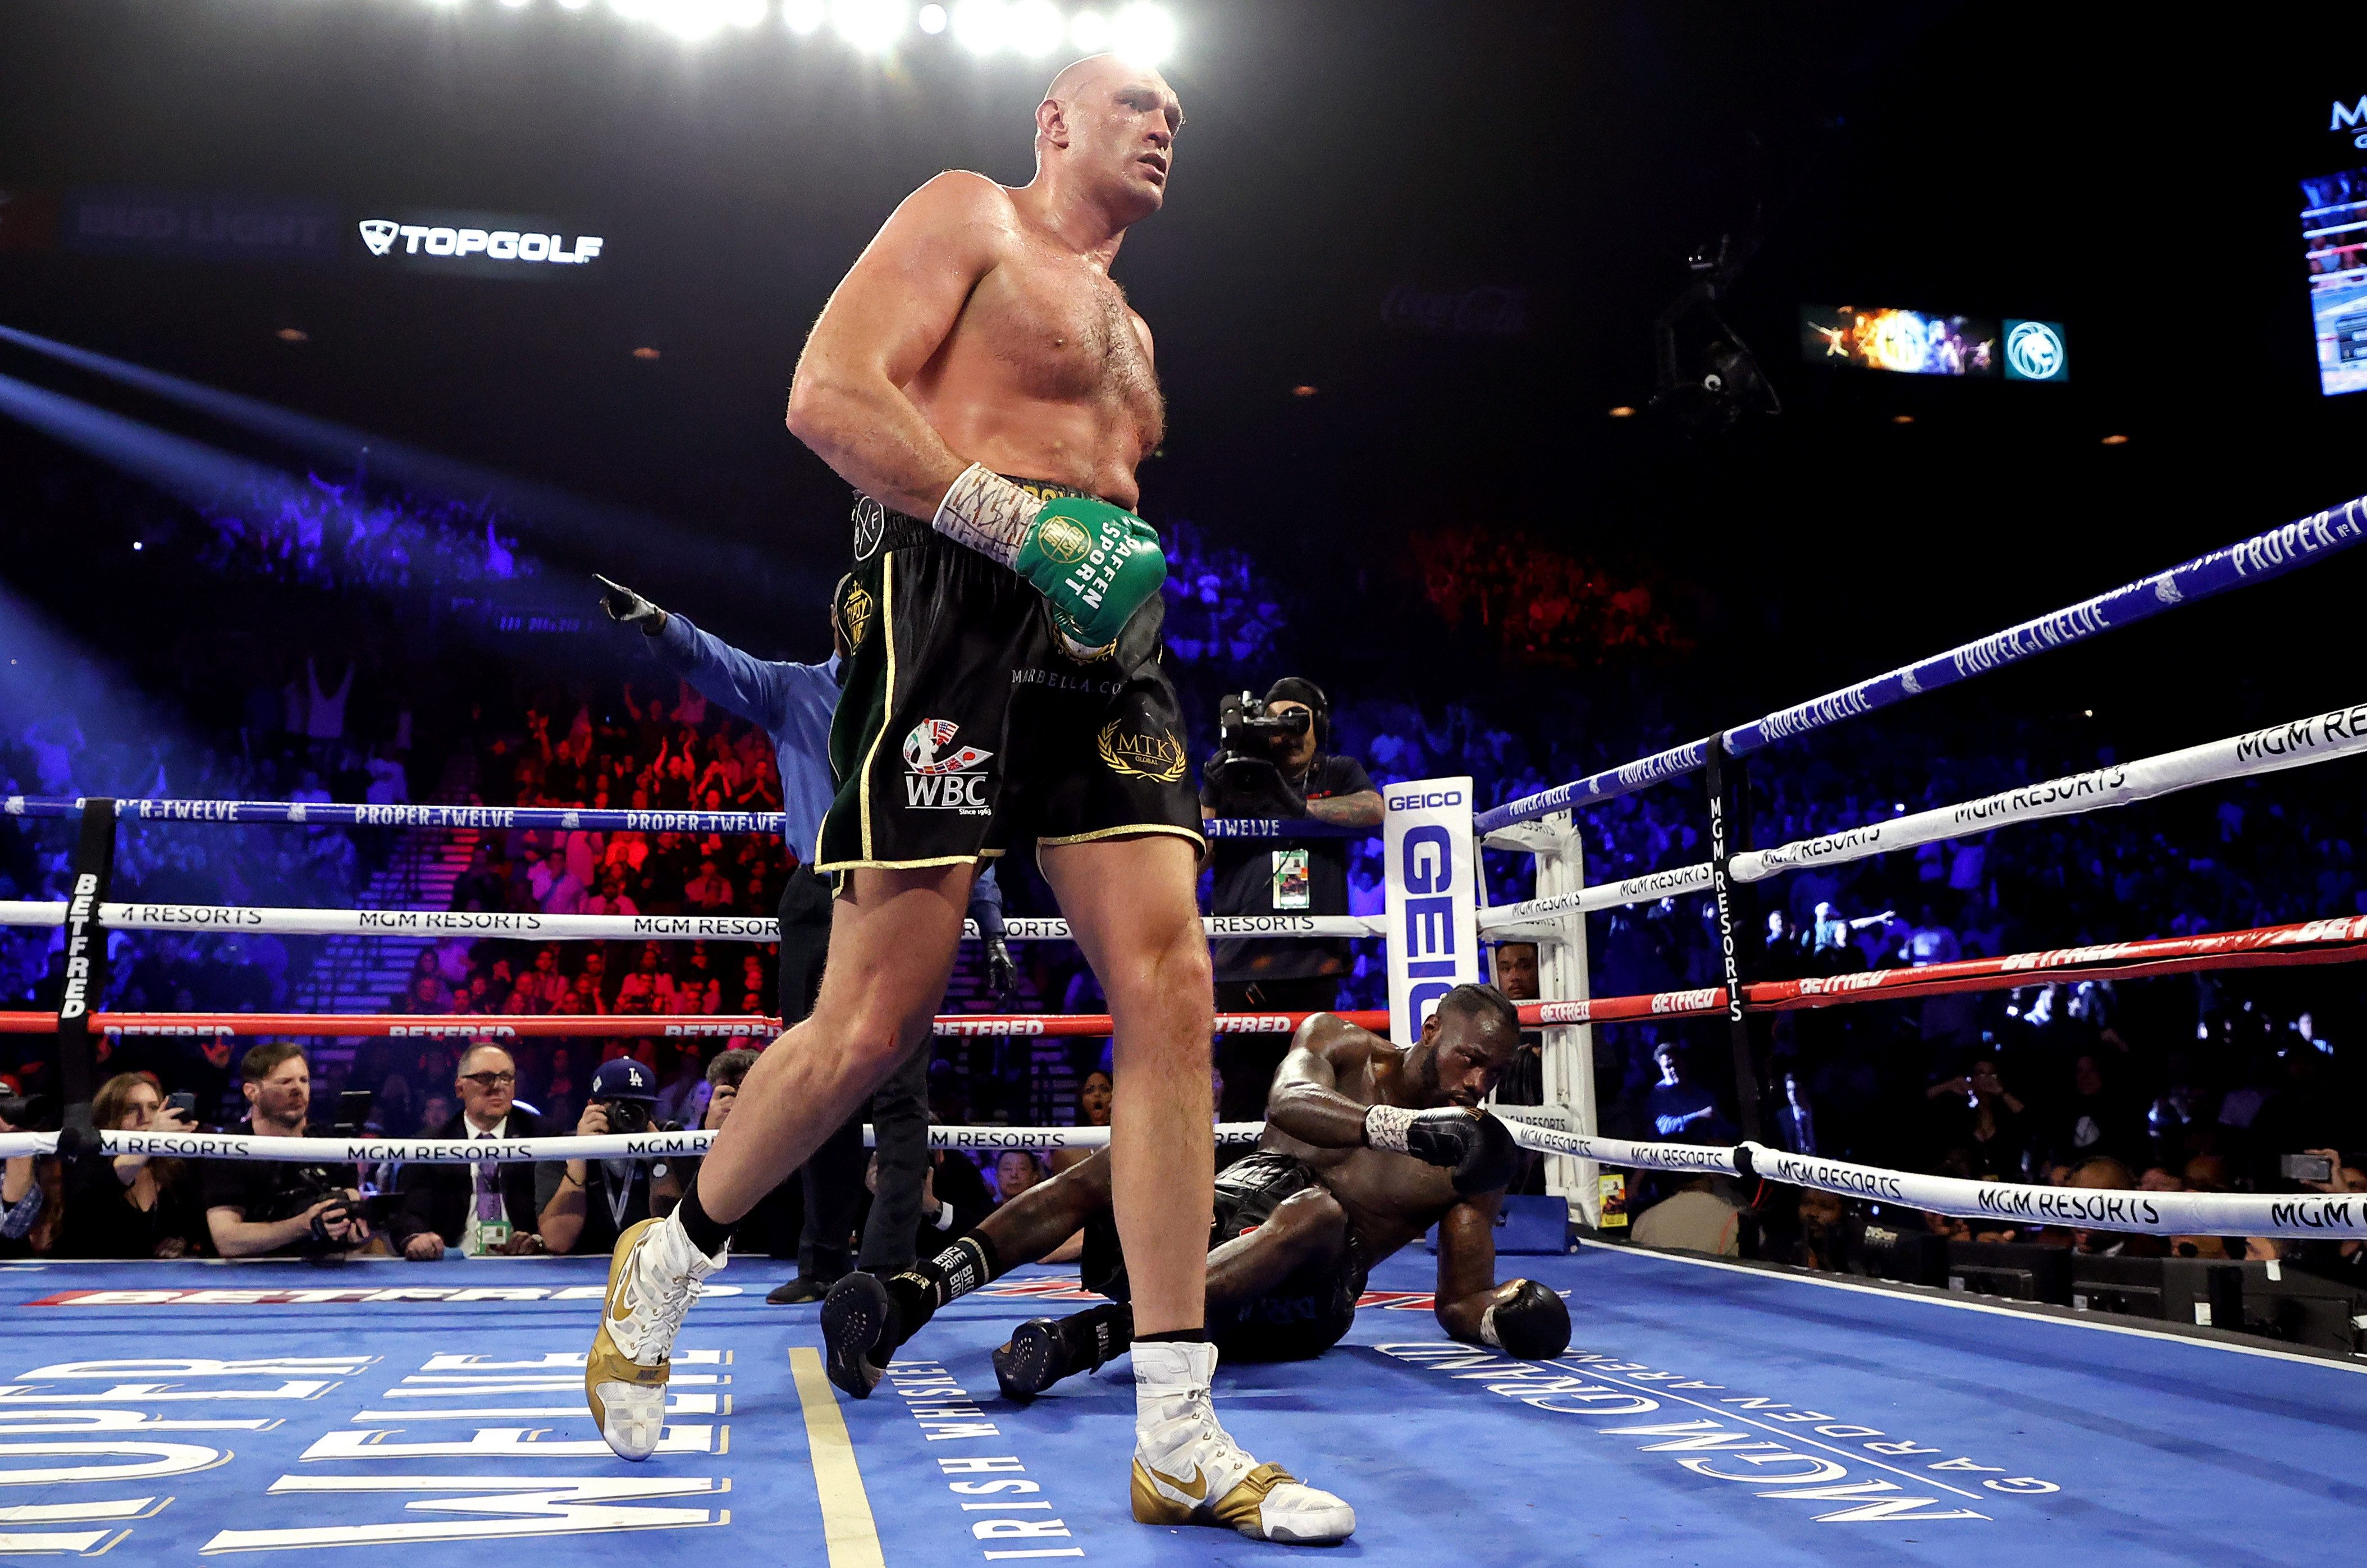 Wilder's camp threw in the towel in the seventh round of the second fight with Fury